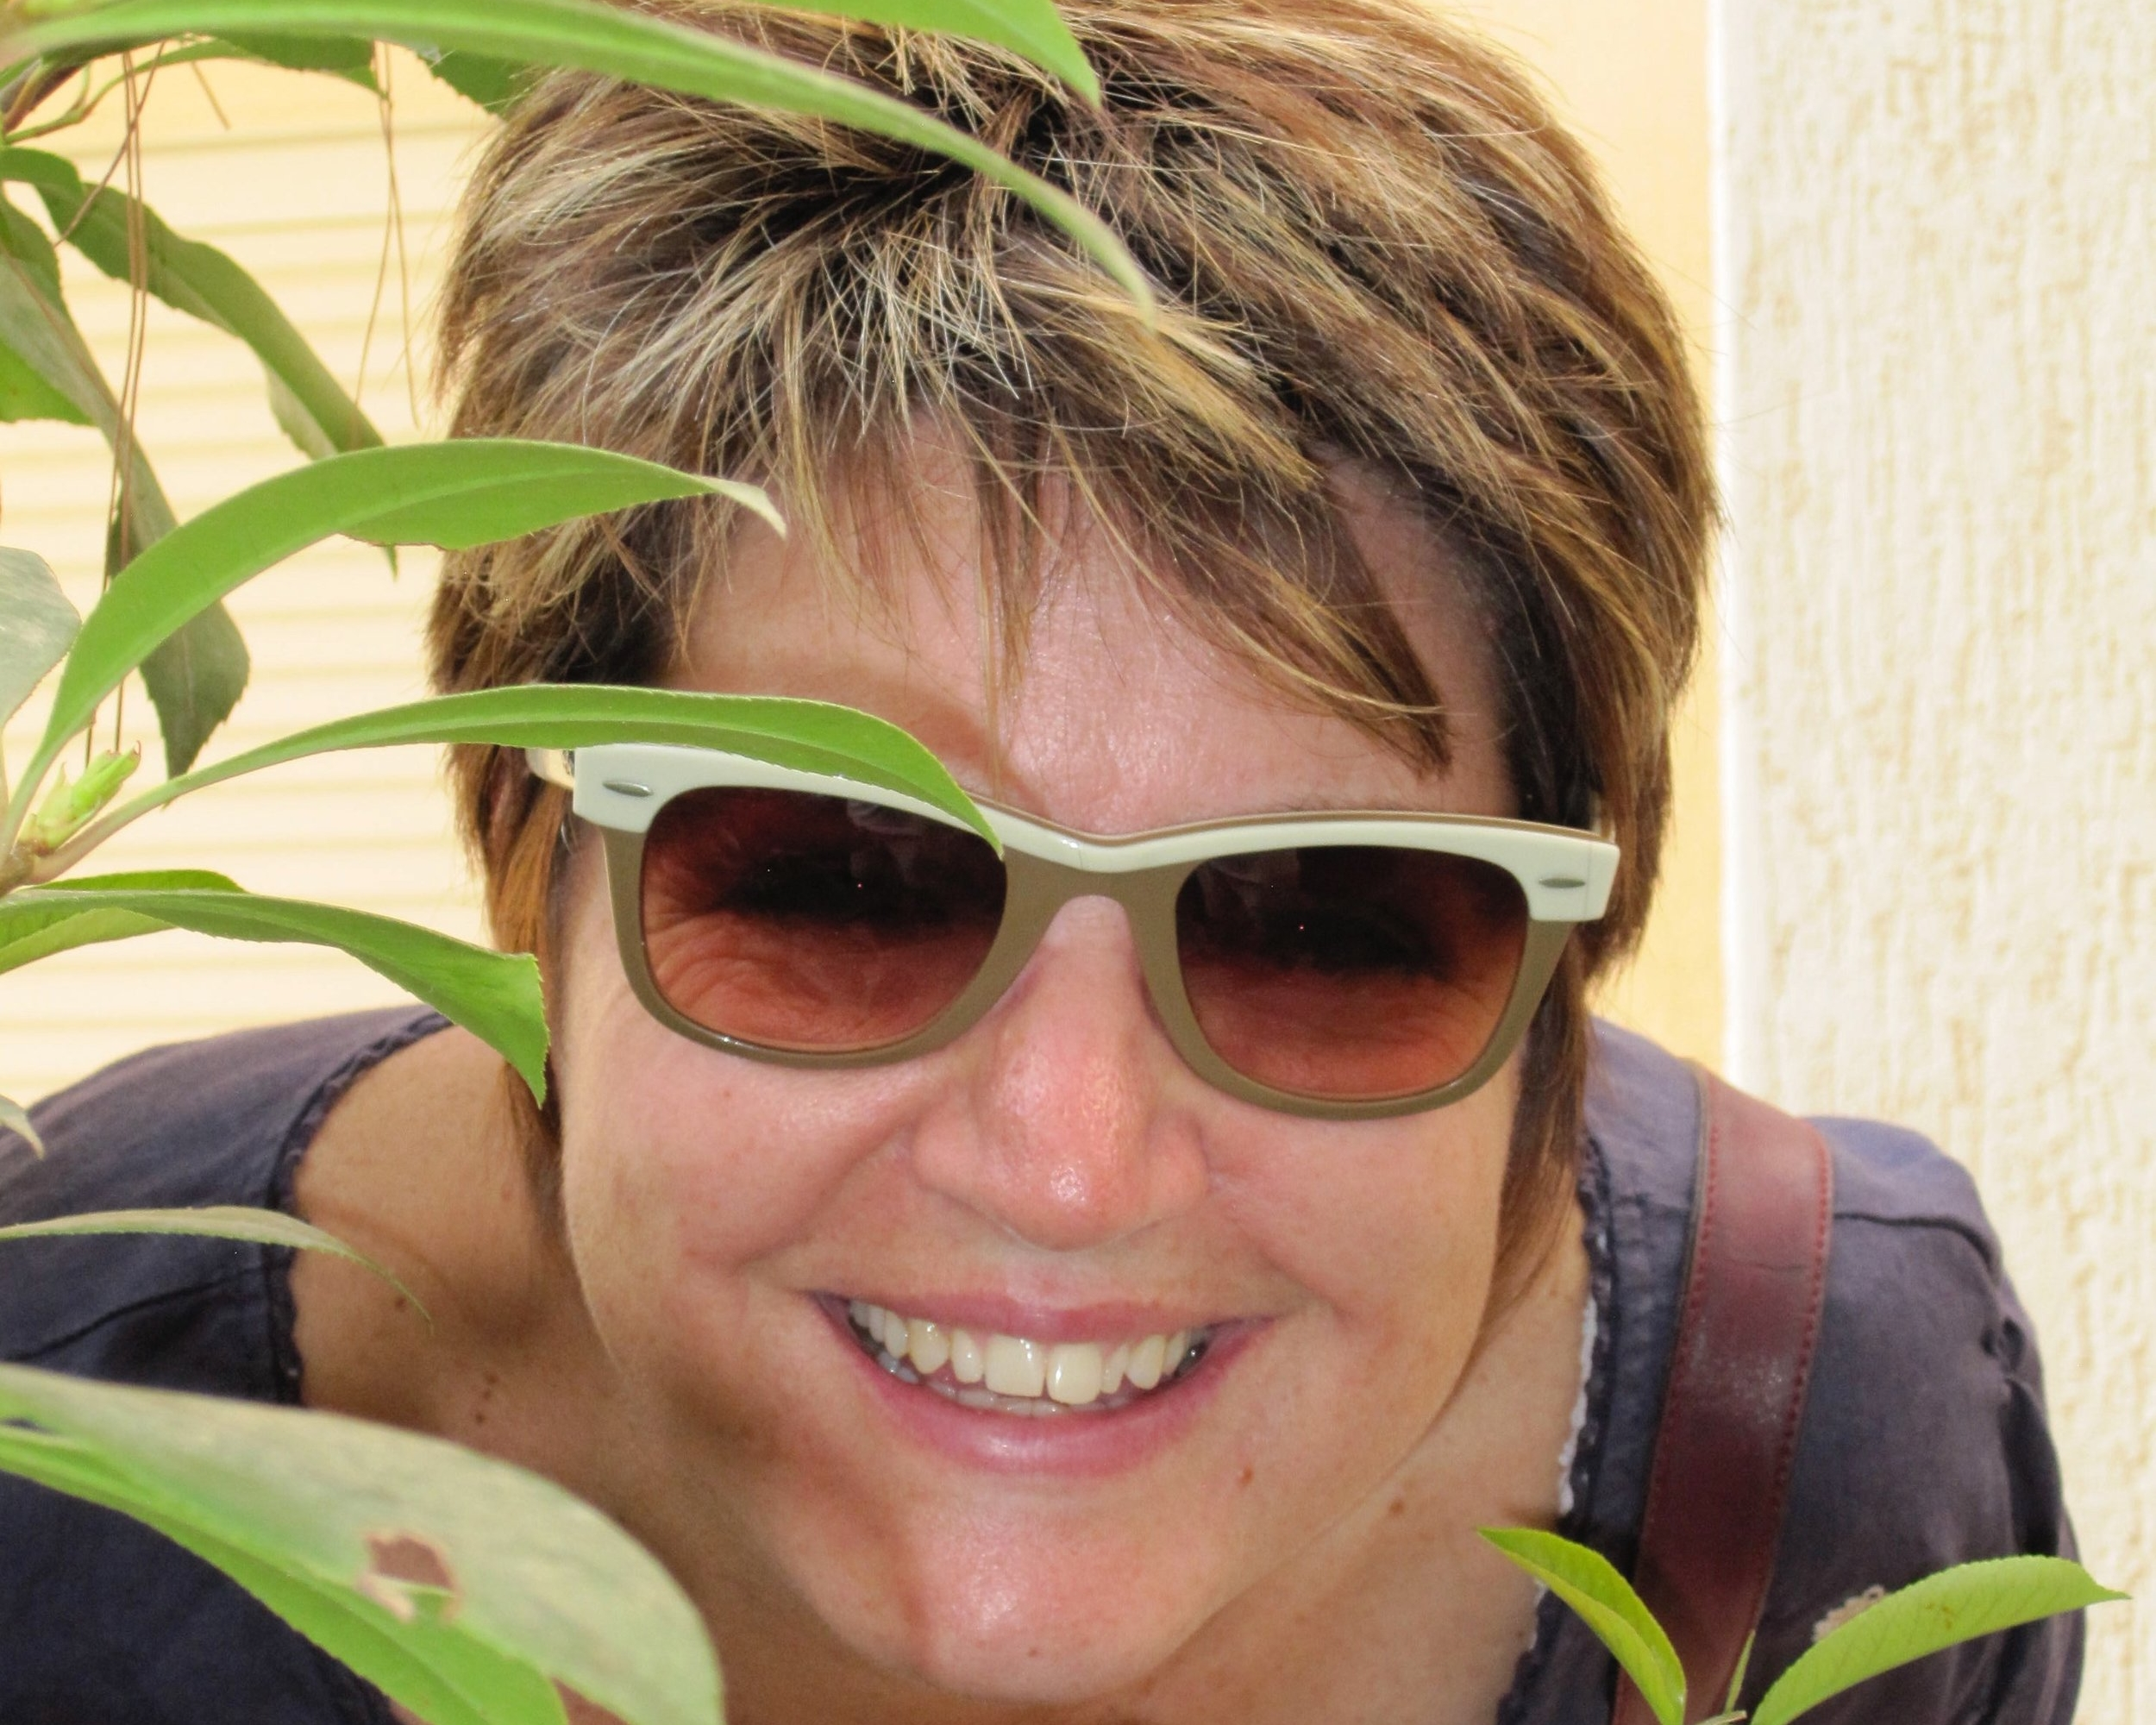 Antoinette Valsamakis   Antoinette is a director and consultant within a risk and insurance management company and full-time carer of a dependent Aunt. She is passionate about finding ways we can simplify our lives and find joy and meaning through connection to our families, communities and the wider world (society and planet).